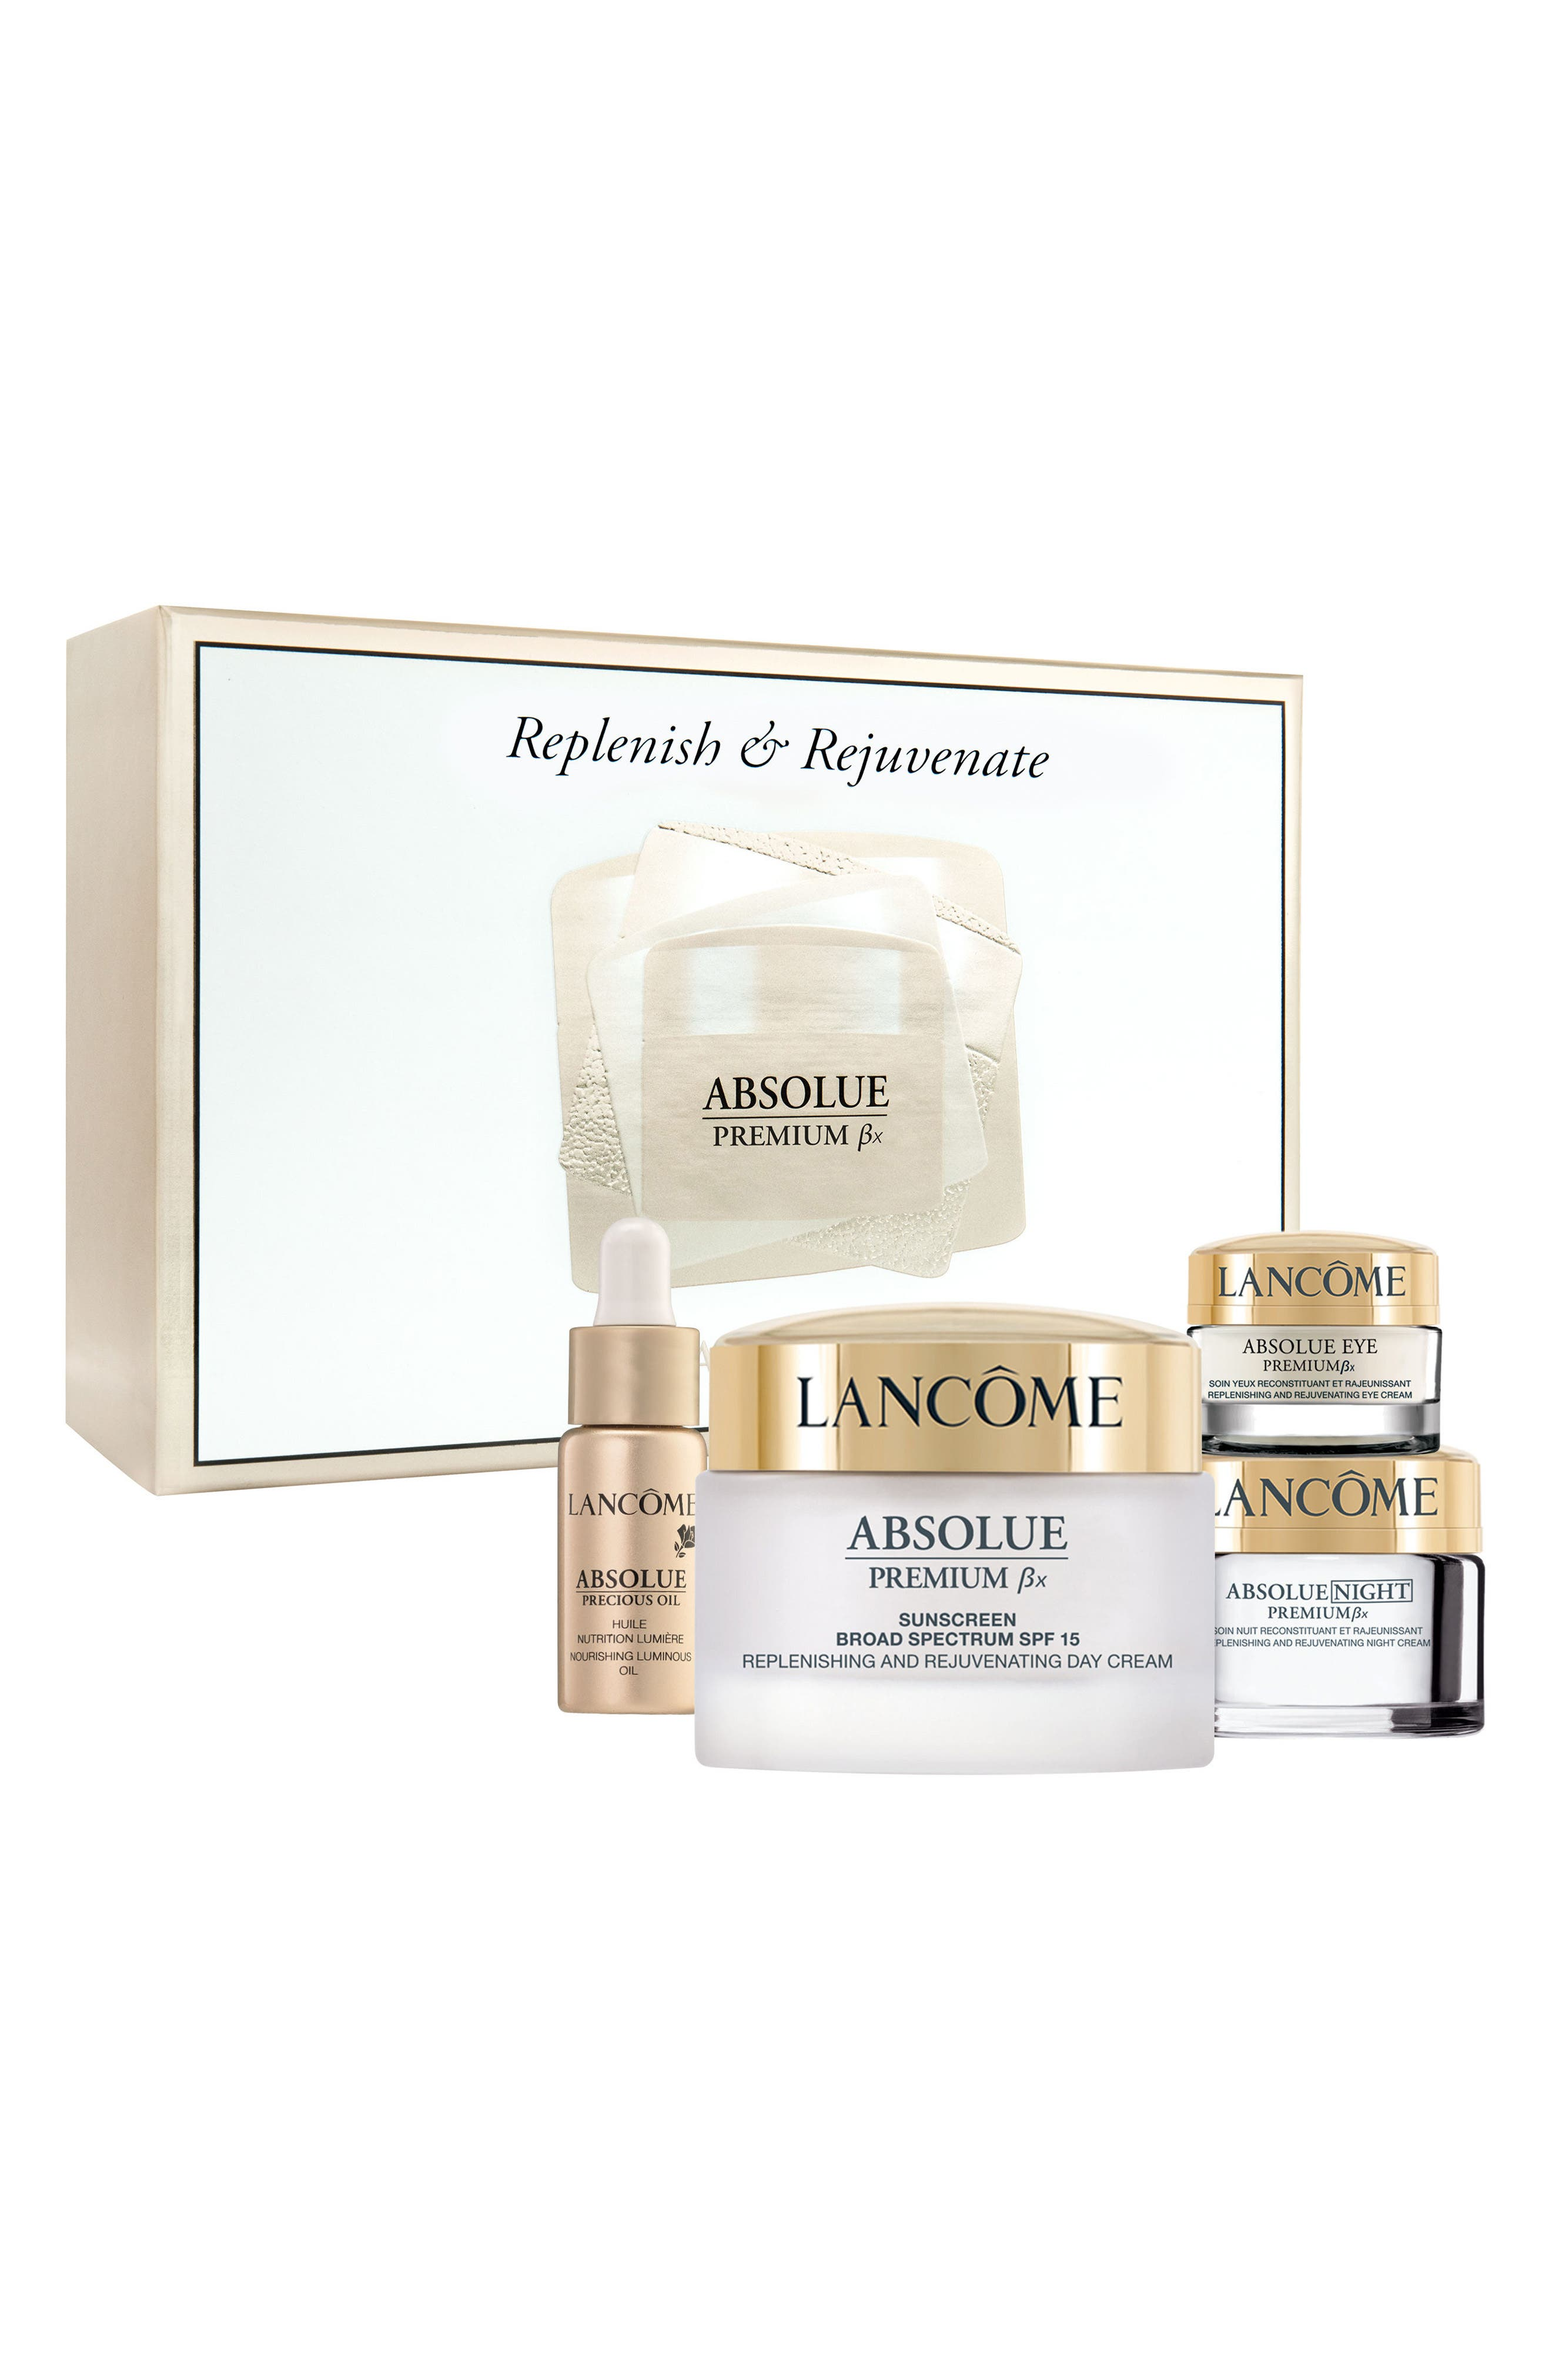 Replenish & Rejuvenate Absolue Premium Bx Set,                         Main,                         color, No Color